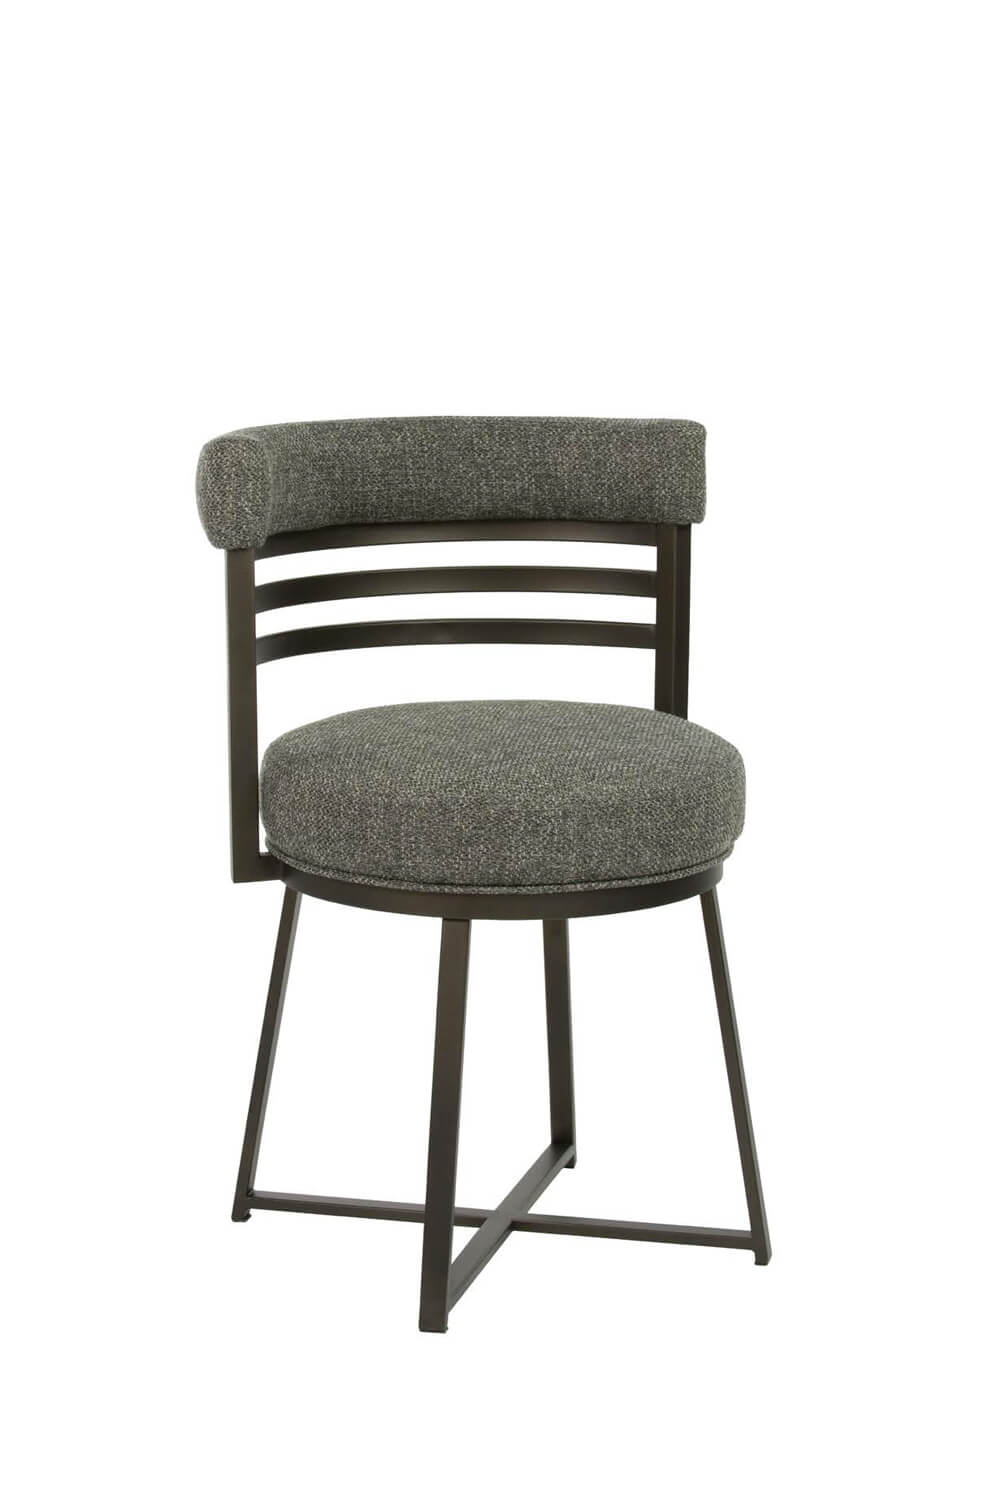 Miramar Dining Chair with Curved Back